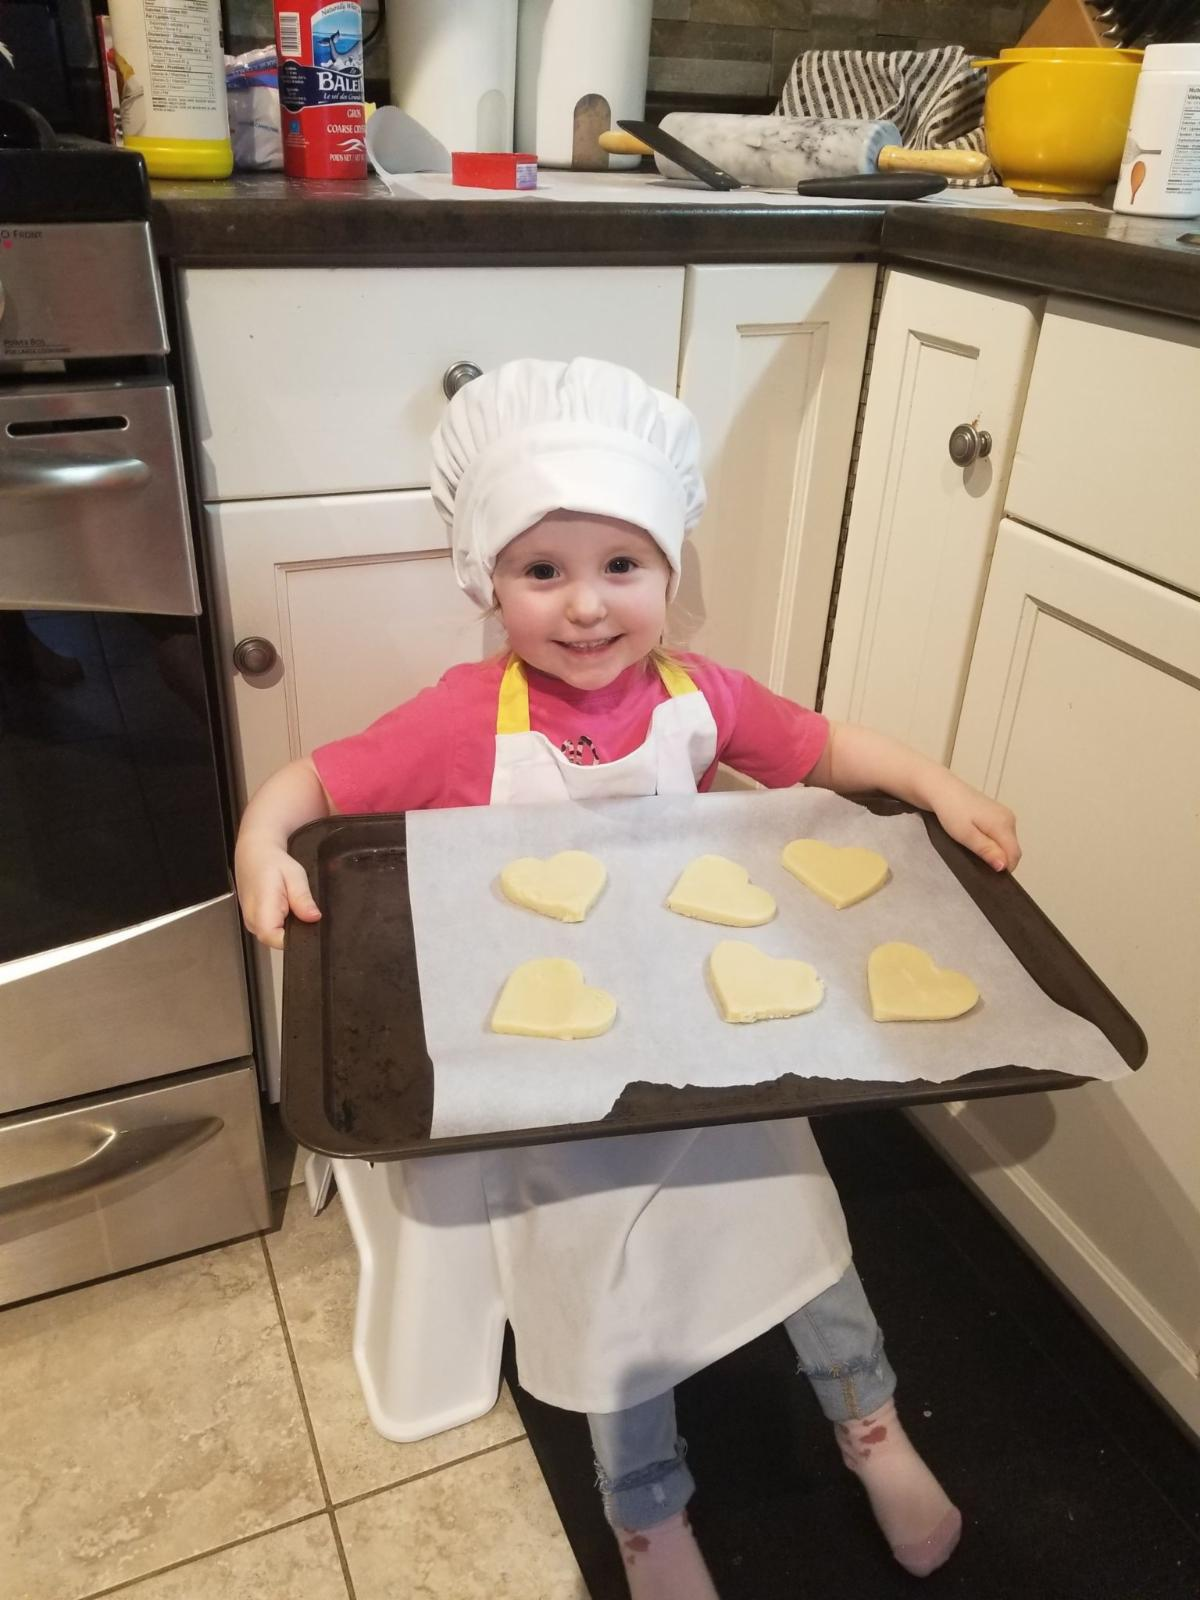 Small child wearing a white and apron proudly holding a tray of heart-shaped cookies.